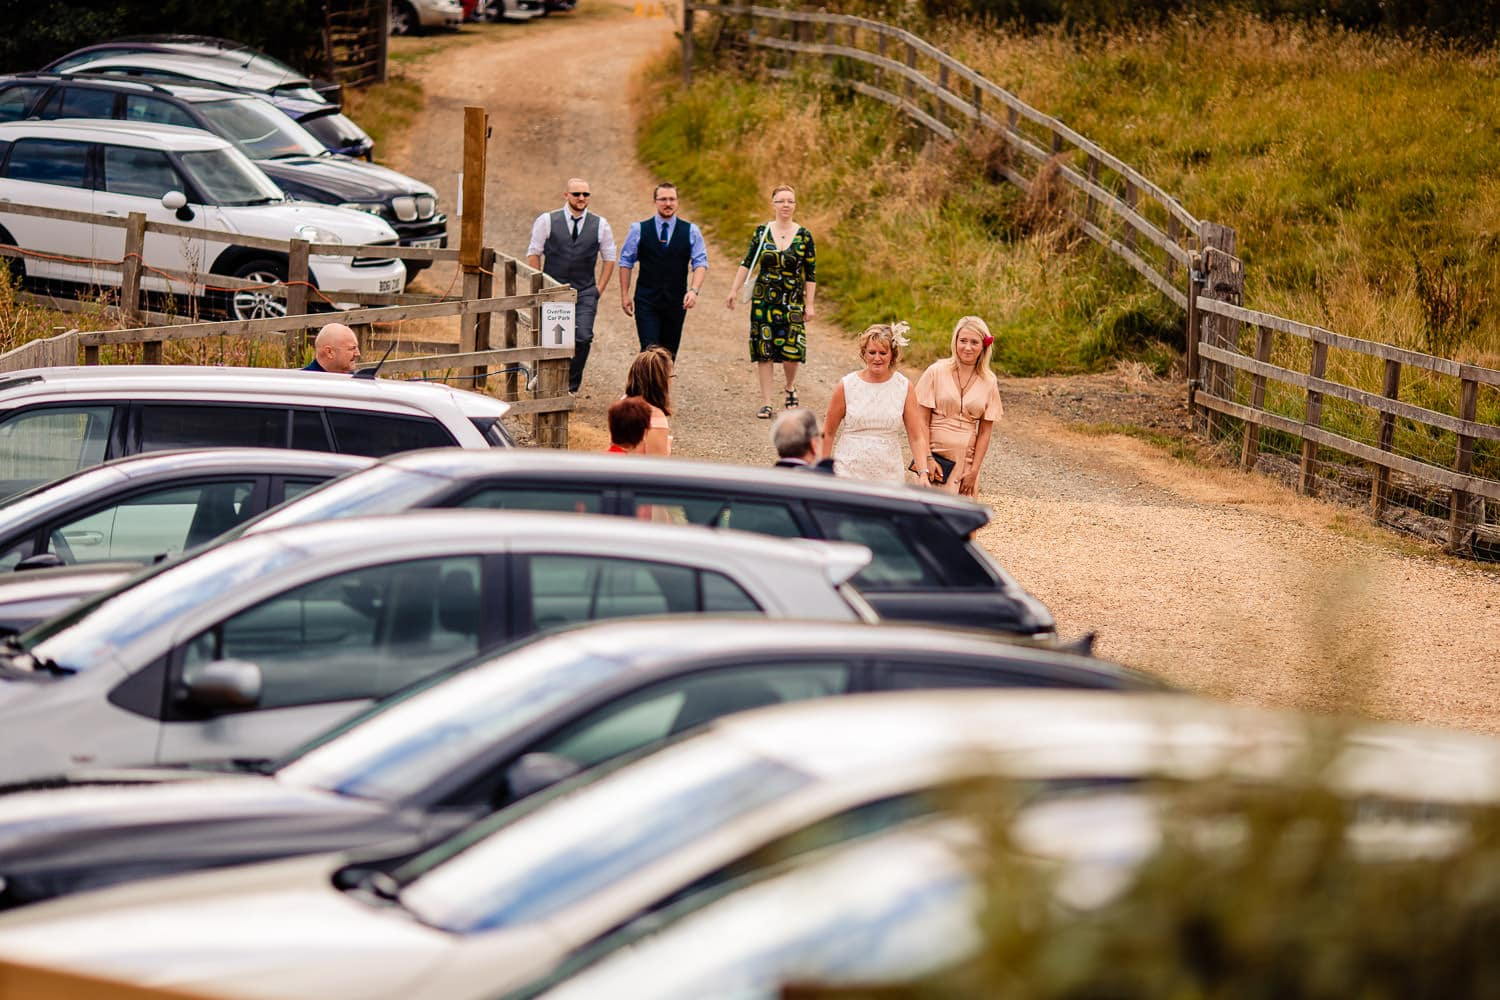 Wedding guests arriving at the Granary at Fawsley Wedding venue in northamptonshire